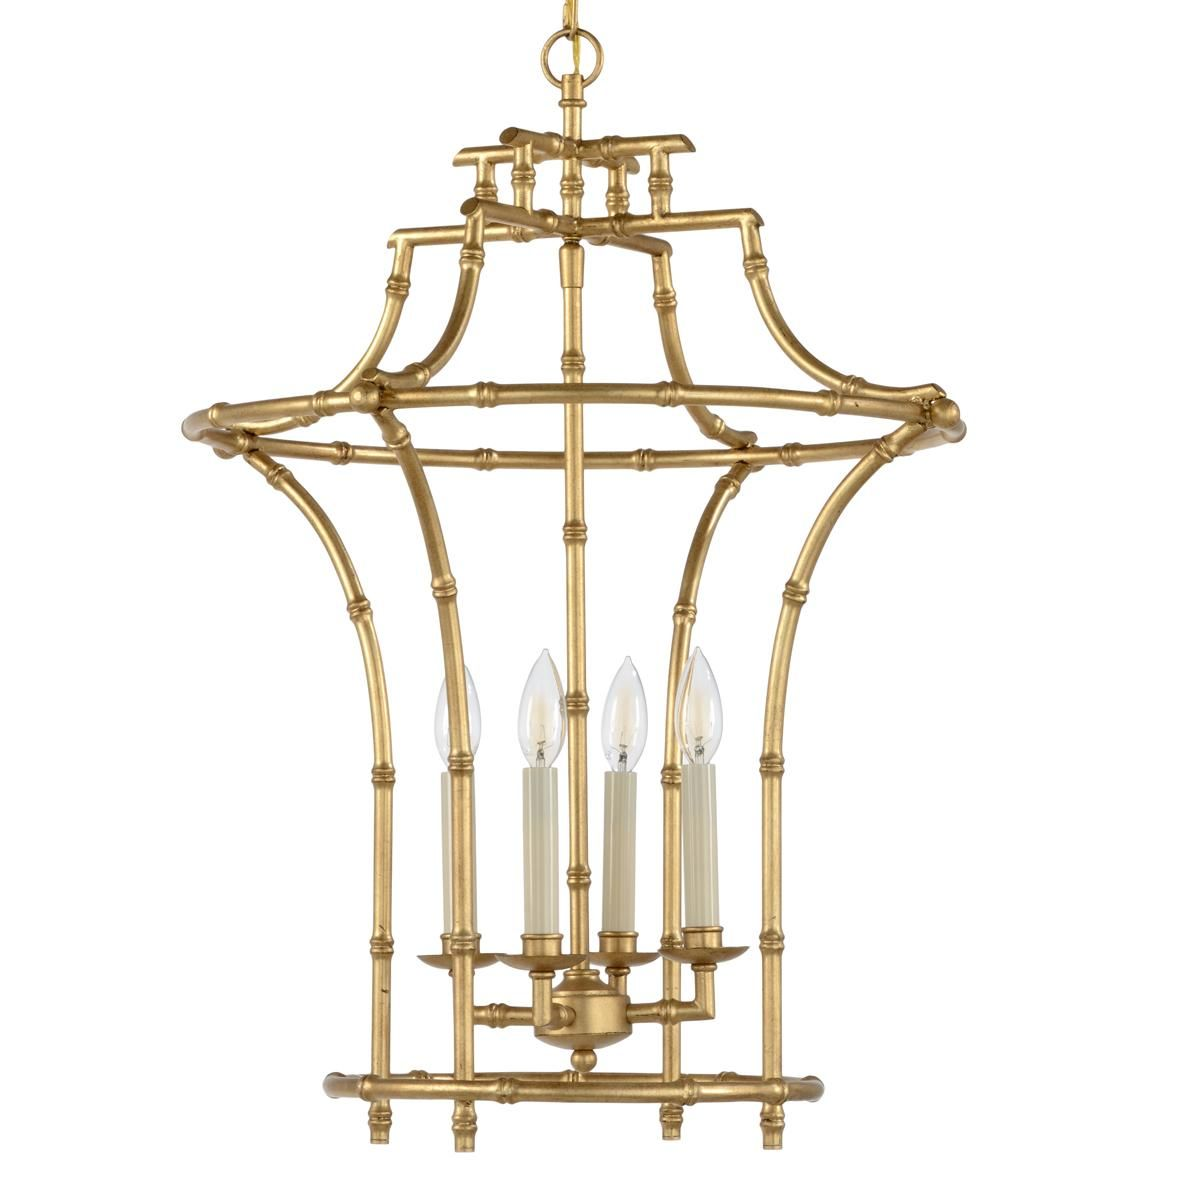 Golden bamboo pagoda lantern tradition lightens up with this golden chelsea house bamboo chandelier pendant shown in antique gold finish arubaitofo Images